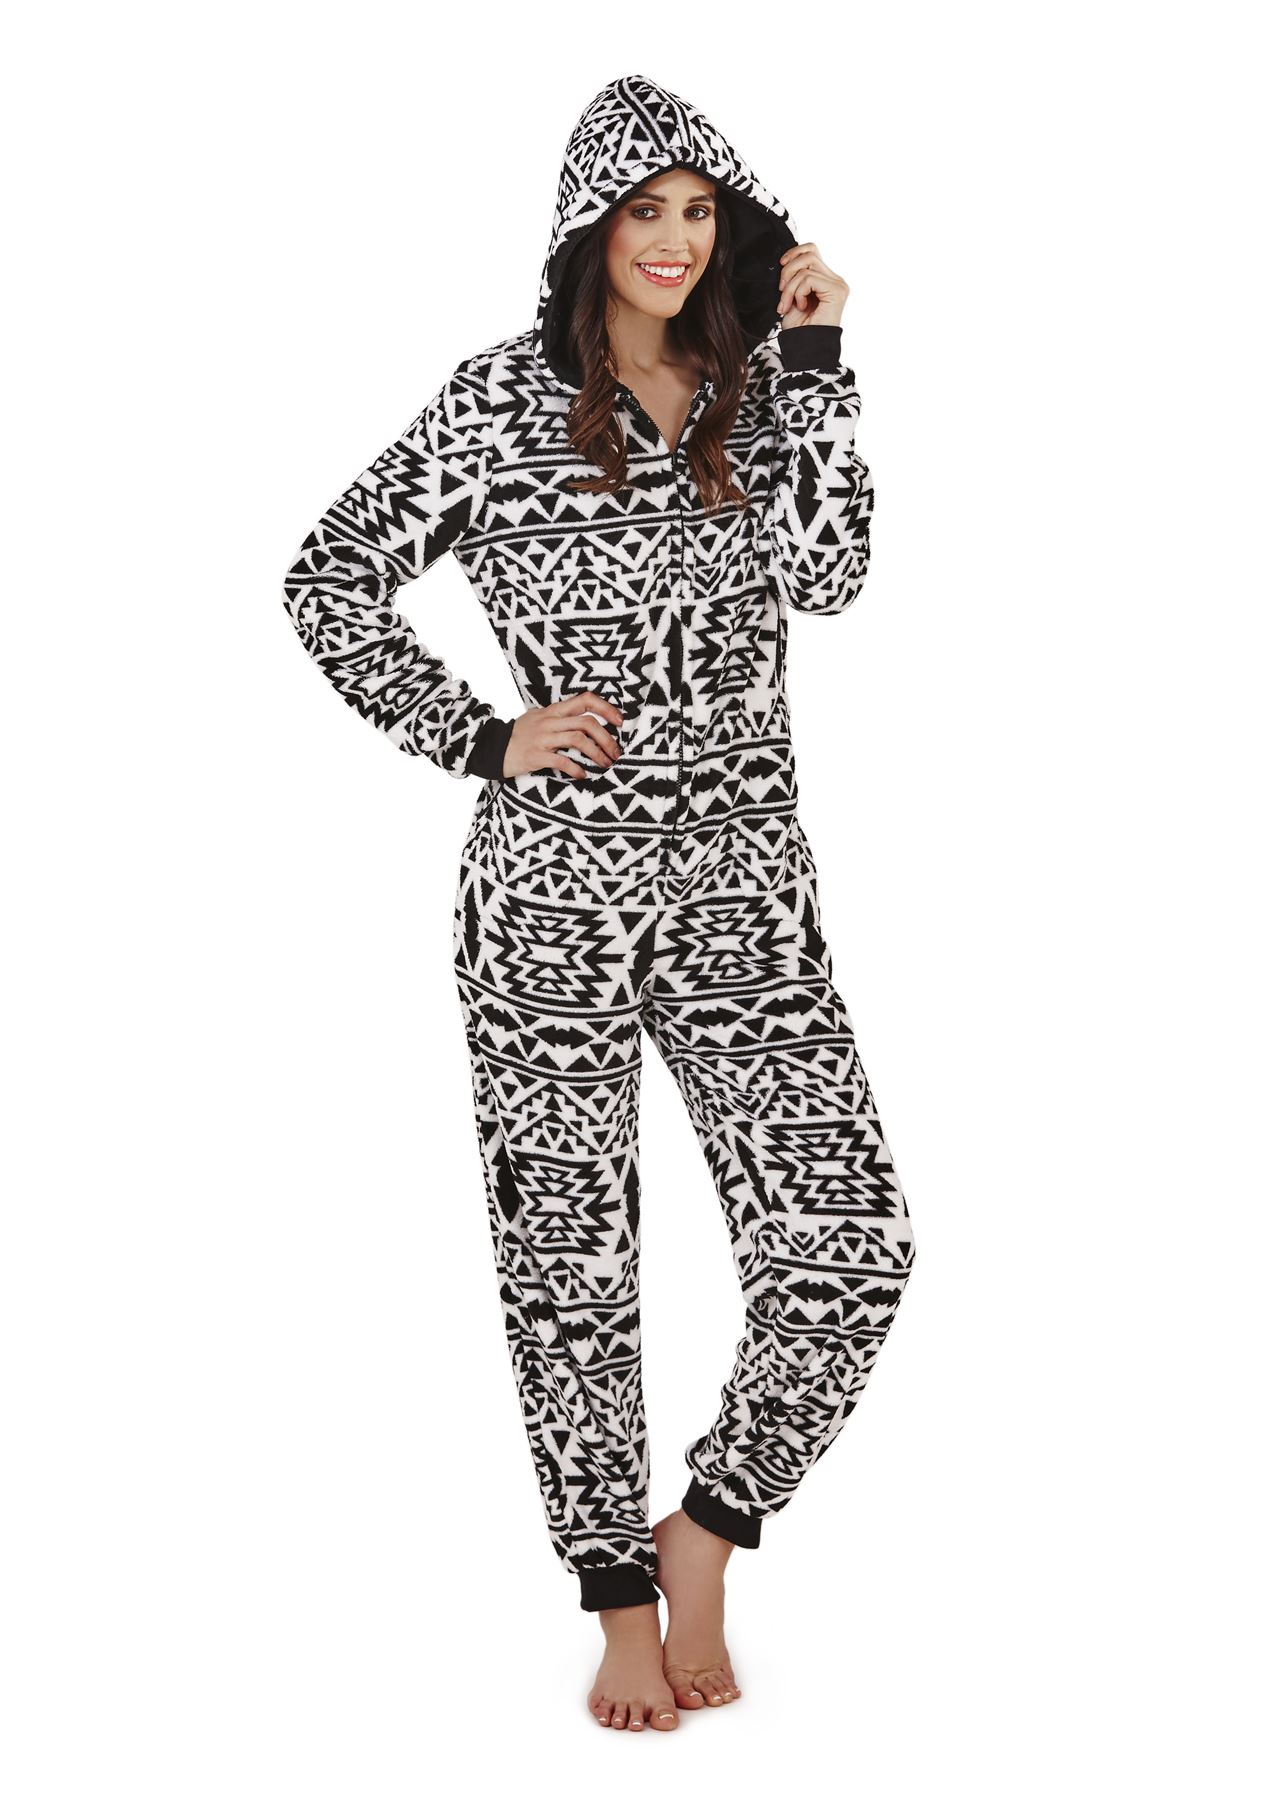 Our Products Combine the Best Footie PJ Features